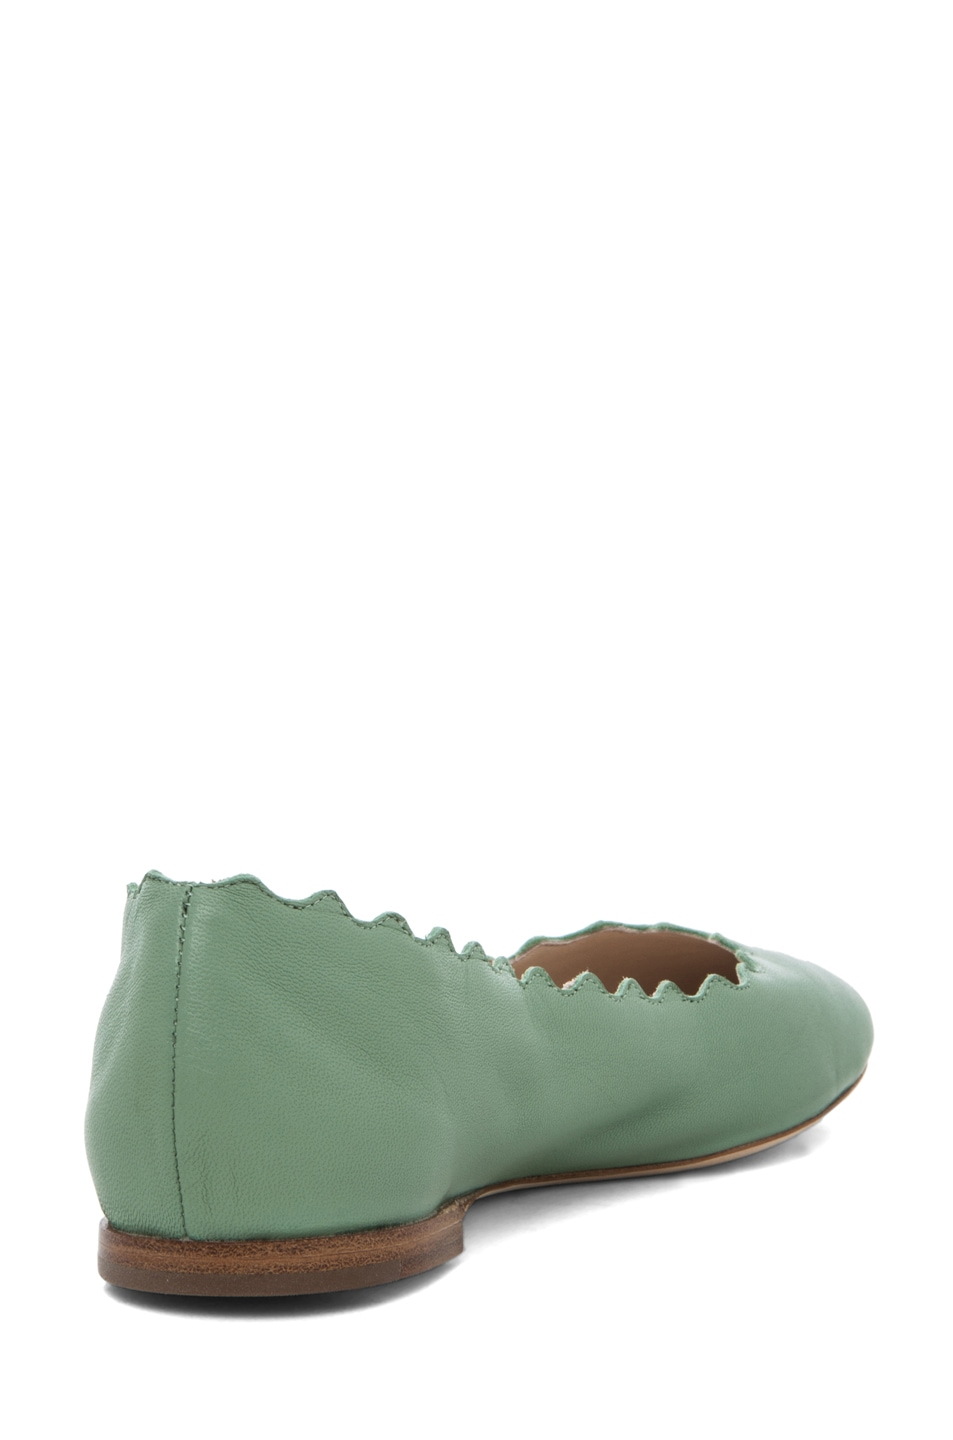 Image 3 of Chloe Lauren Scalloped Flat in Mint